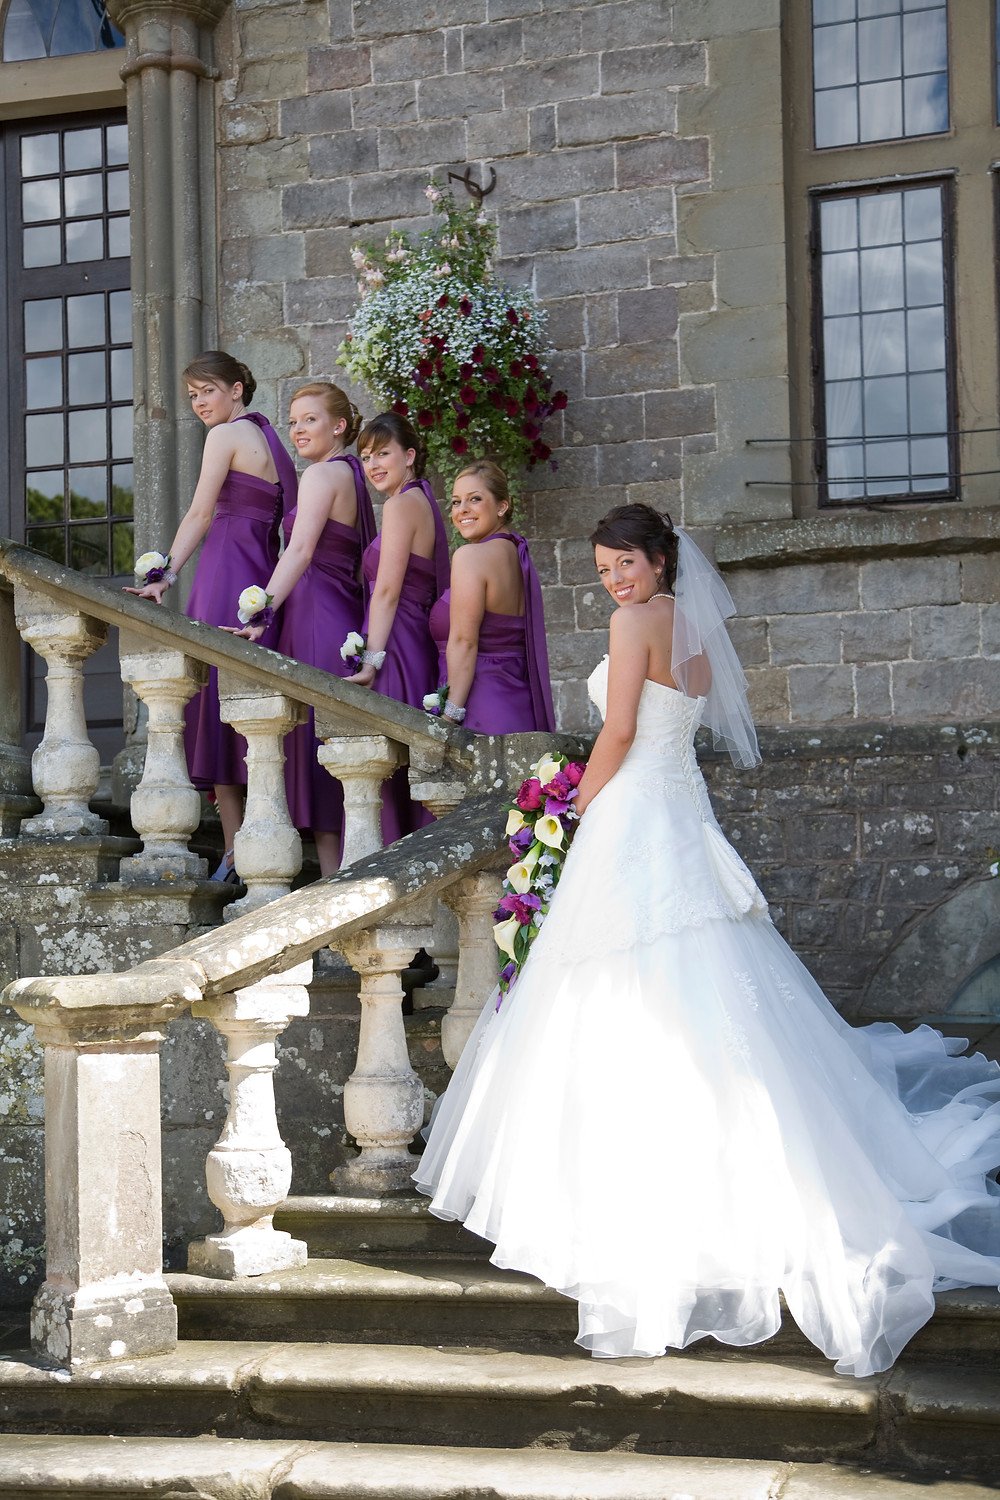 Clearwell Castle bridal party on stairs